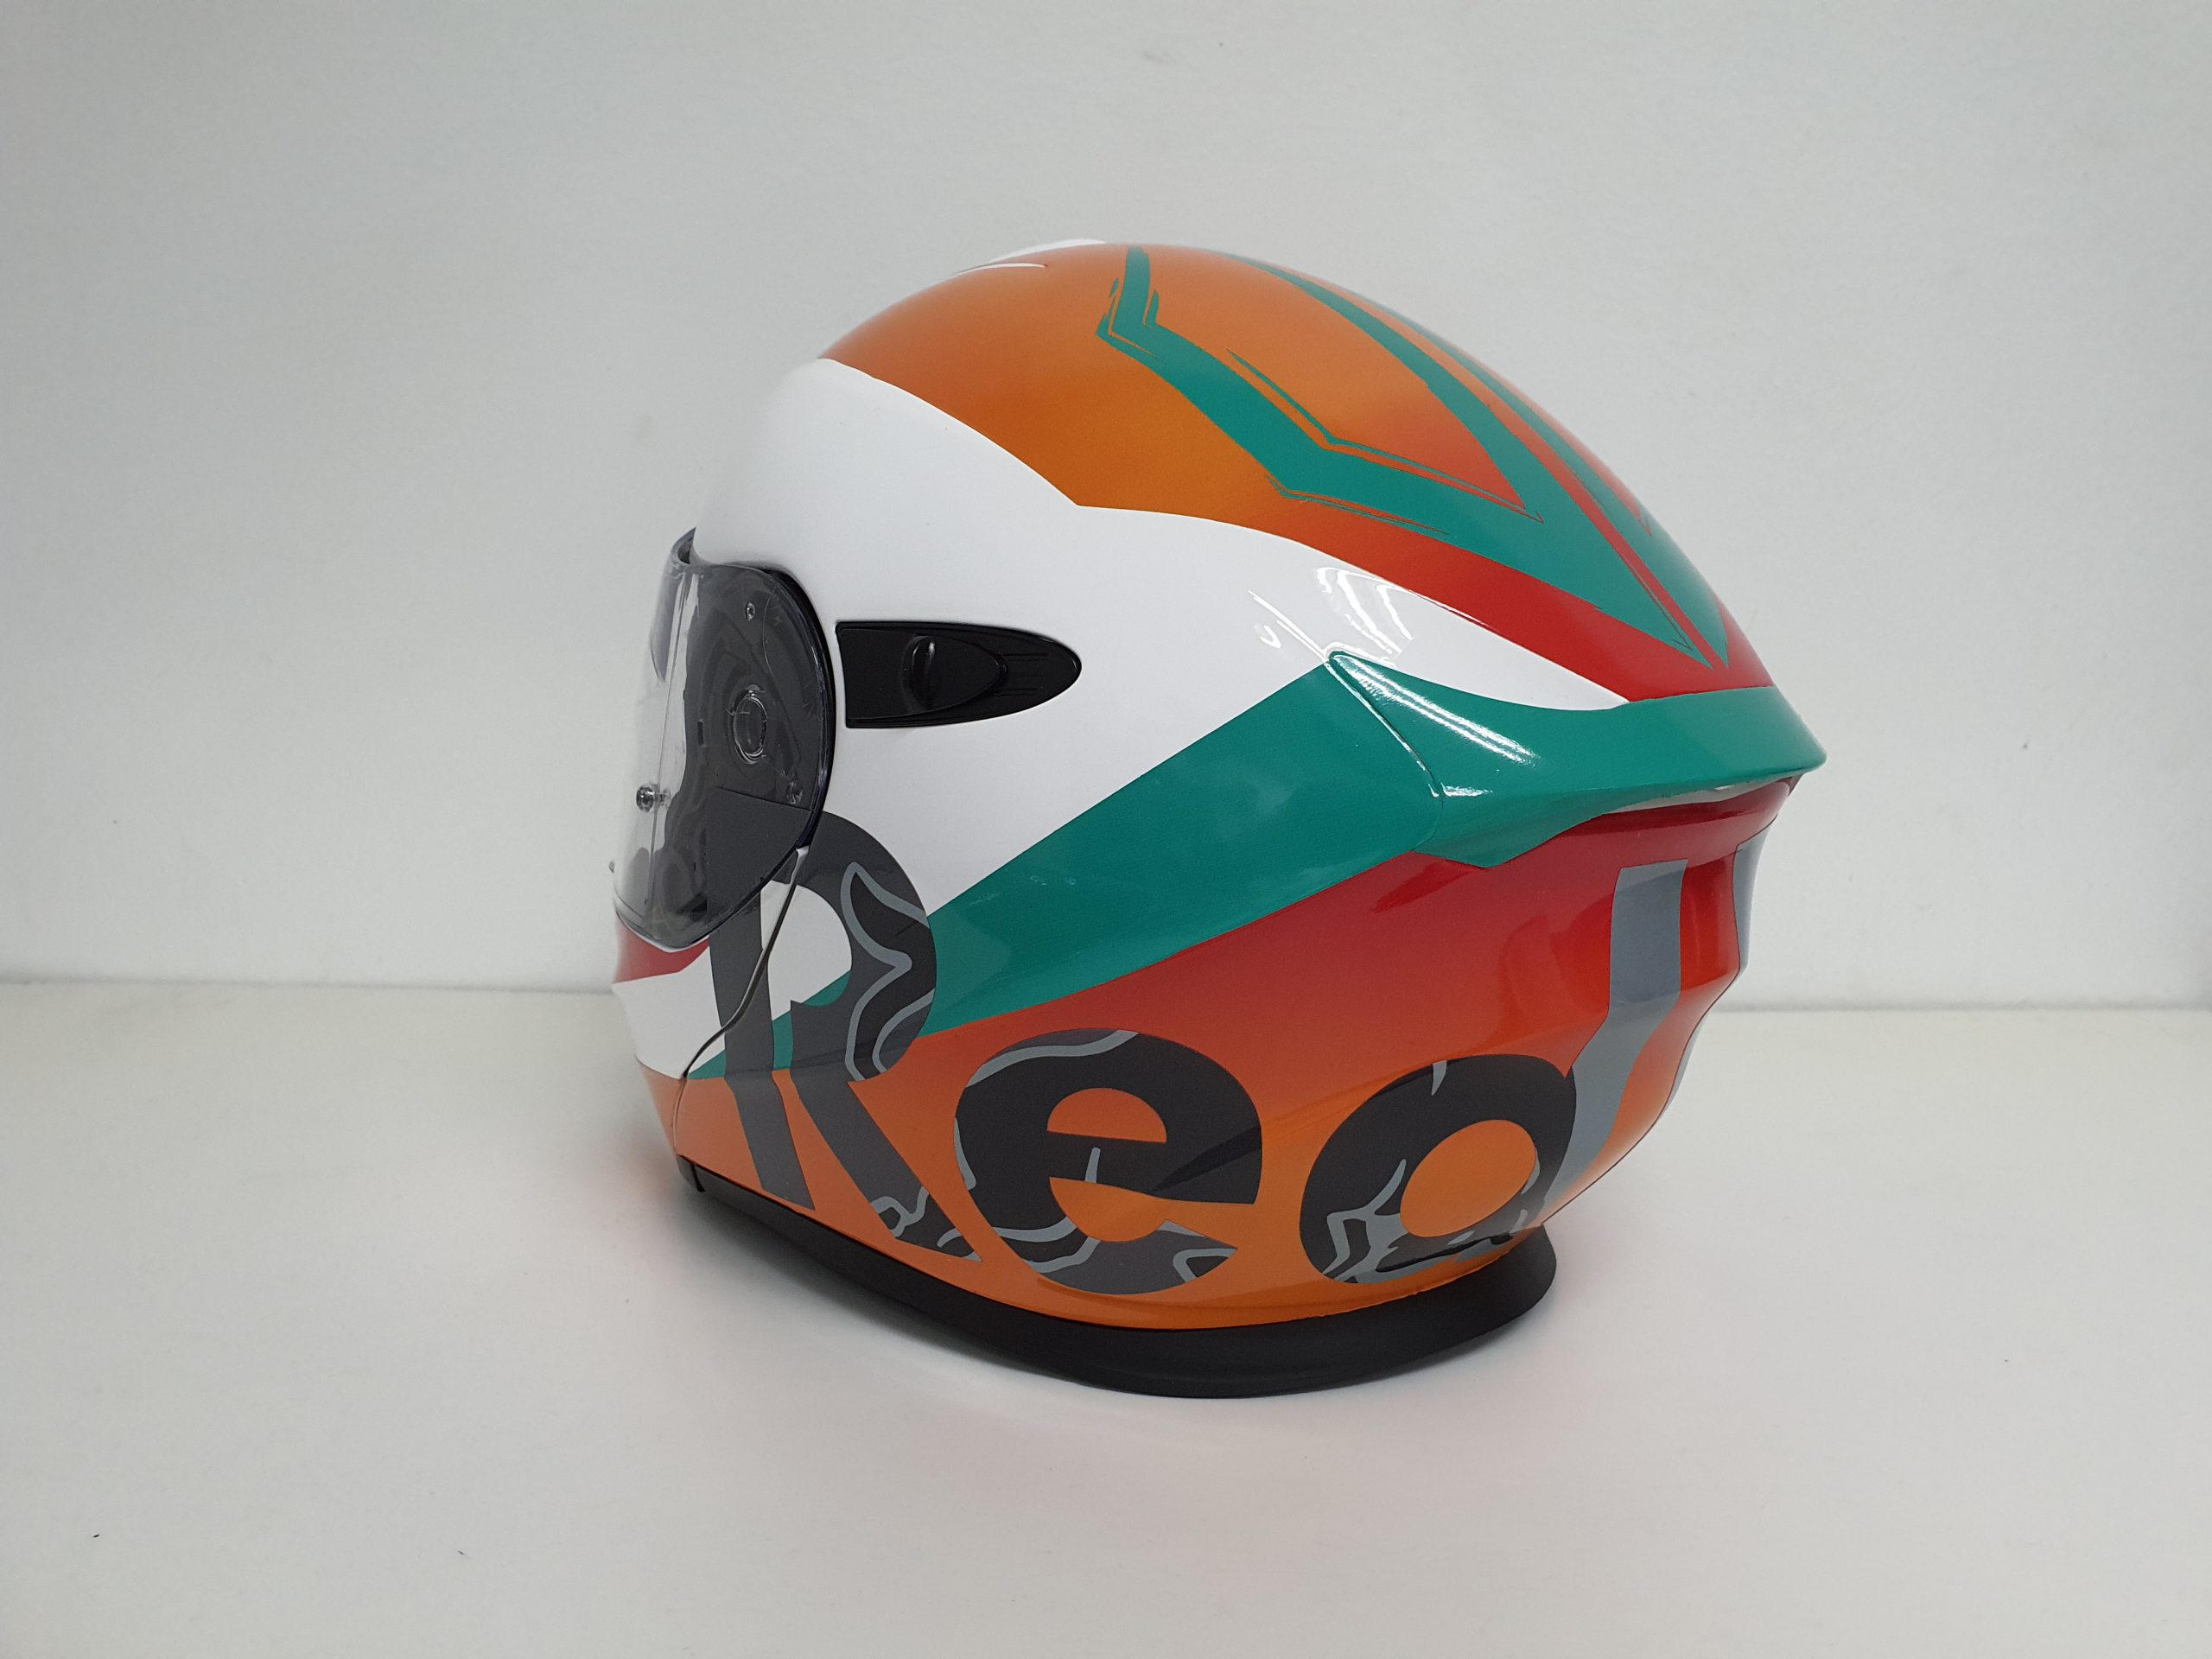 Left Back Profile of the KTM Helmet with subtle graphics on the letters